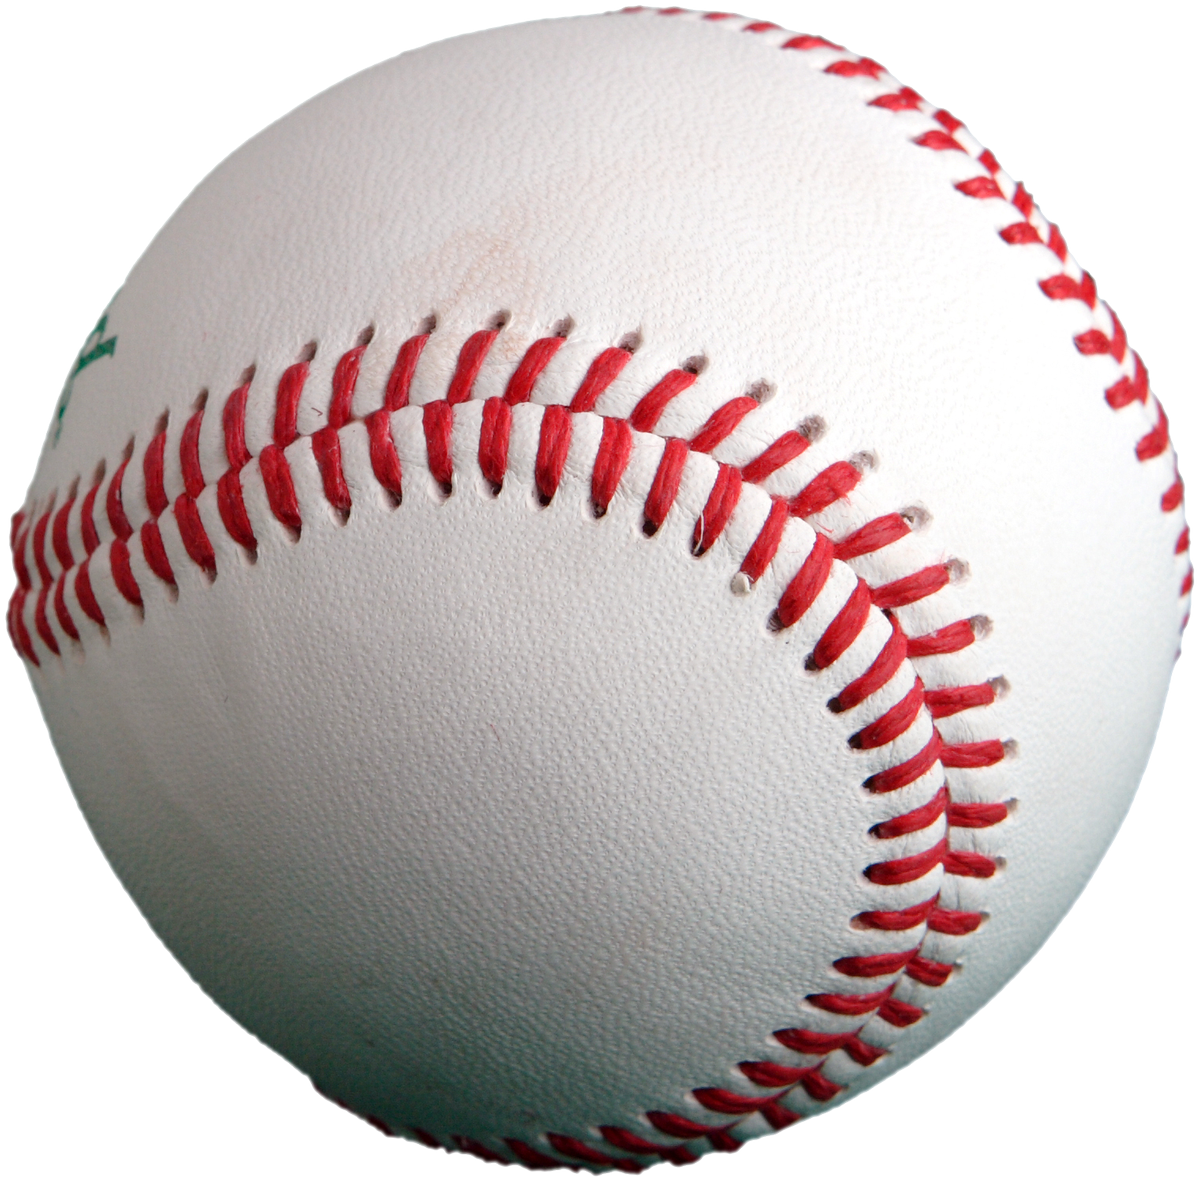 Pelota de beisbol clipart images gallery for free download.